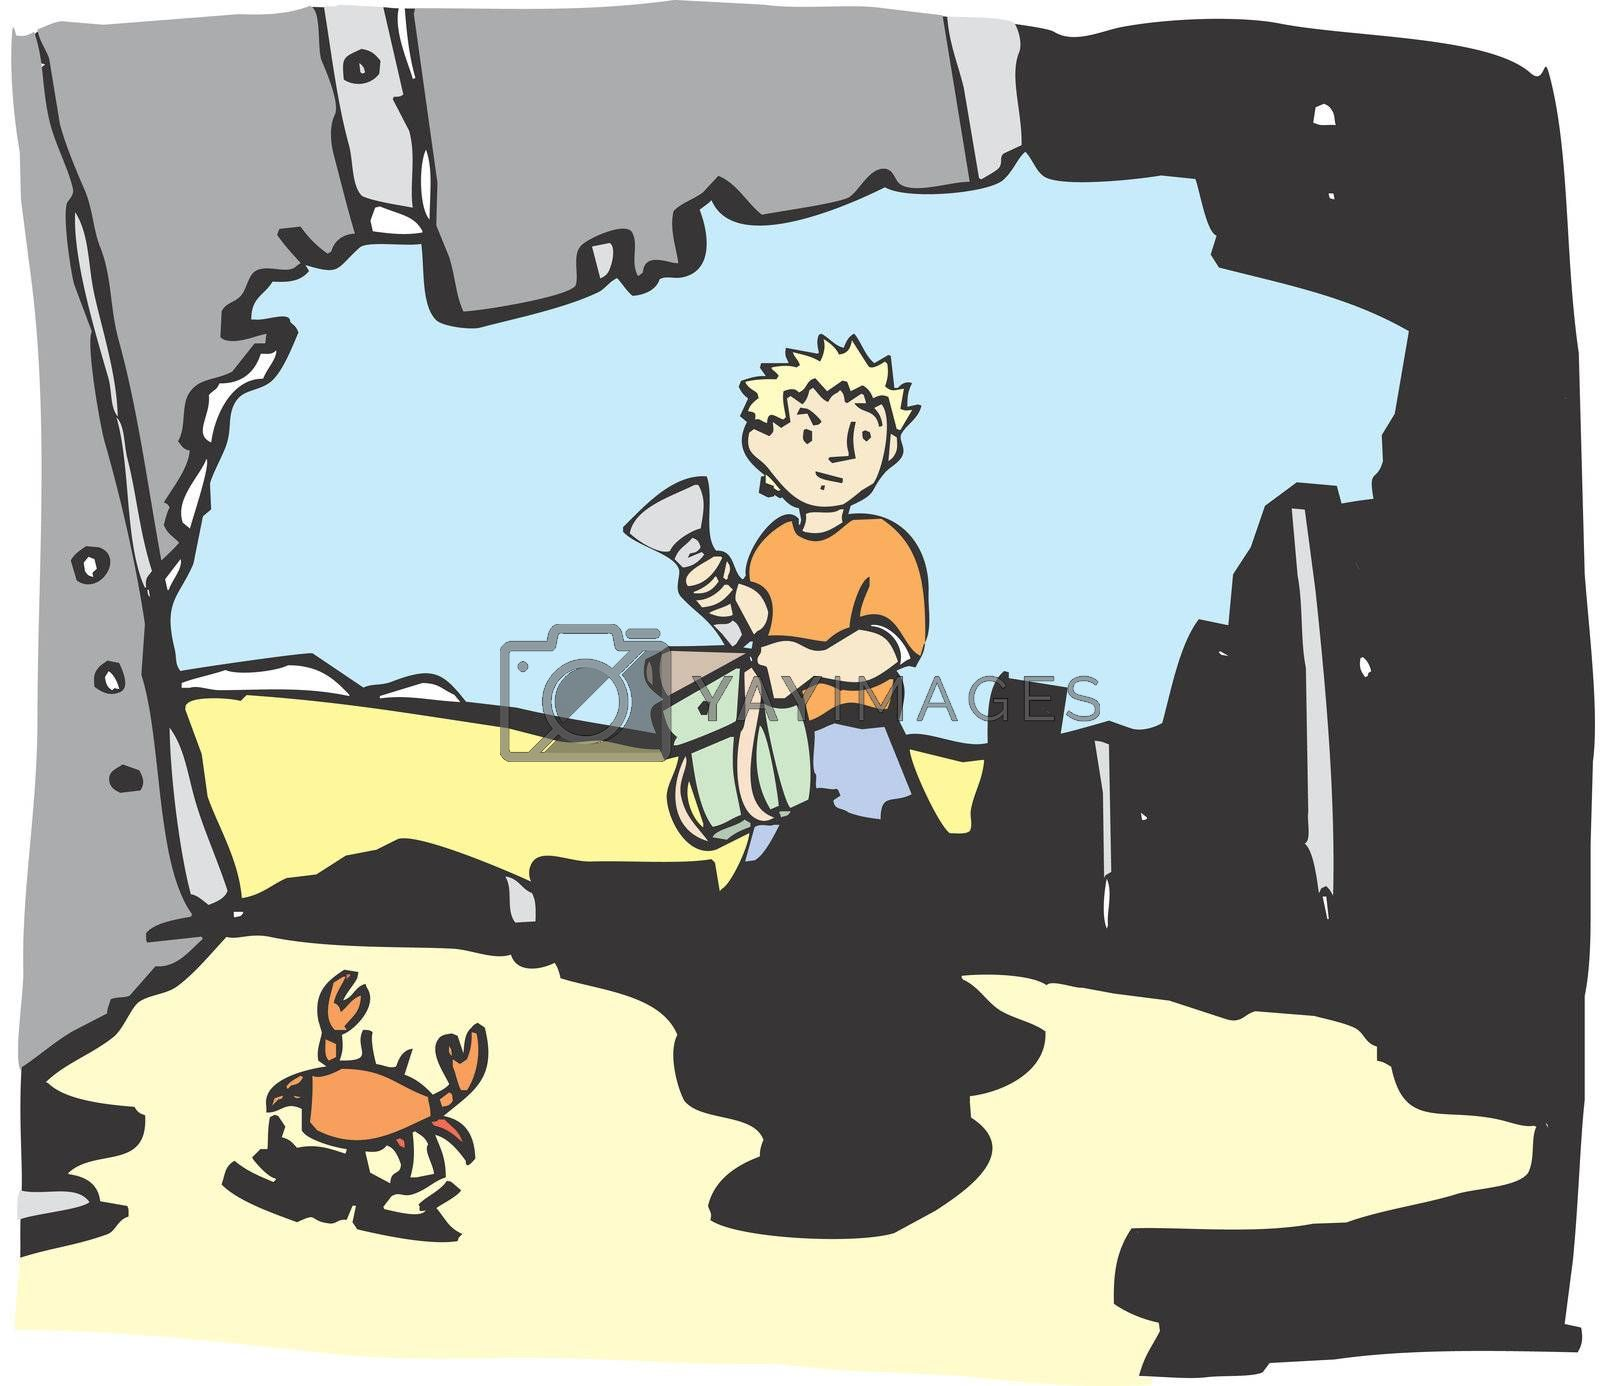 A boy with a flash light gets ready to explore an abandoned ship on a beach.